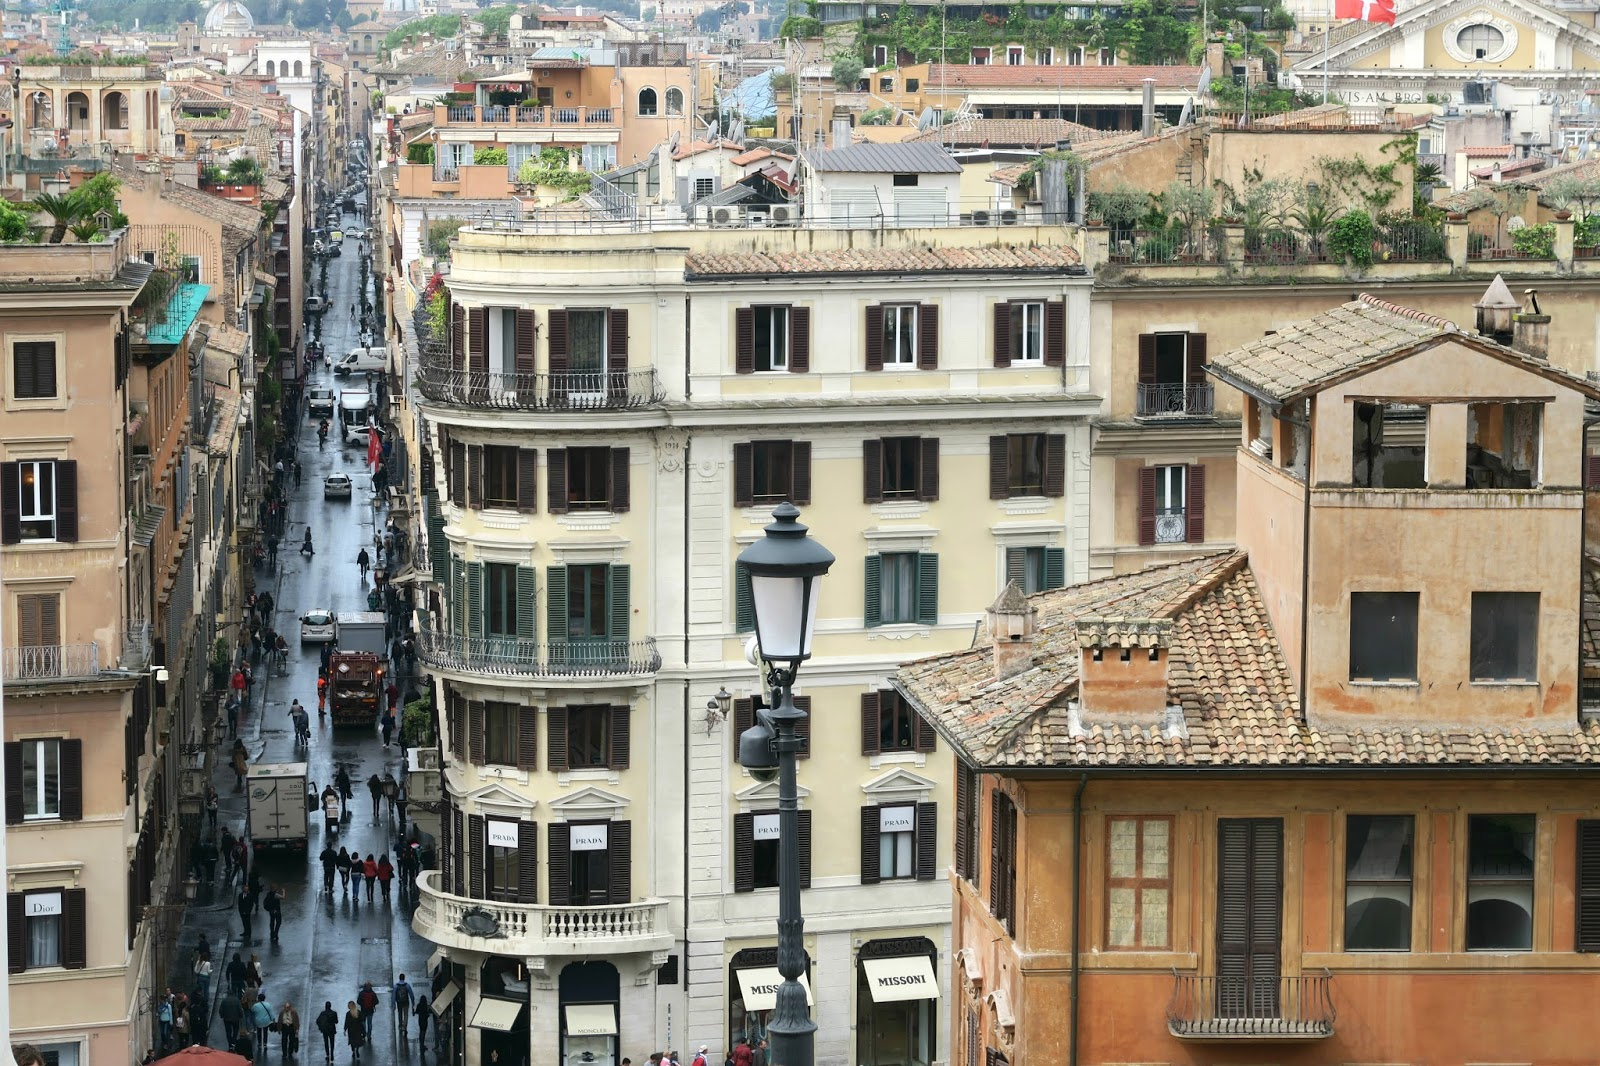 Highstreets in Rome